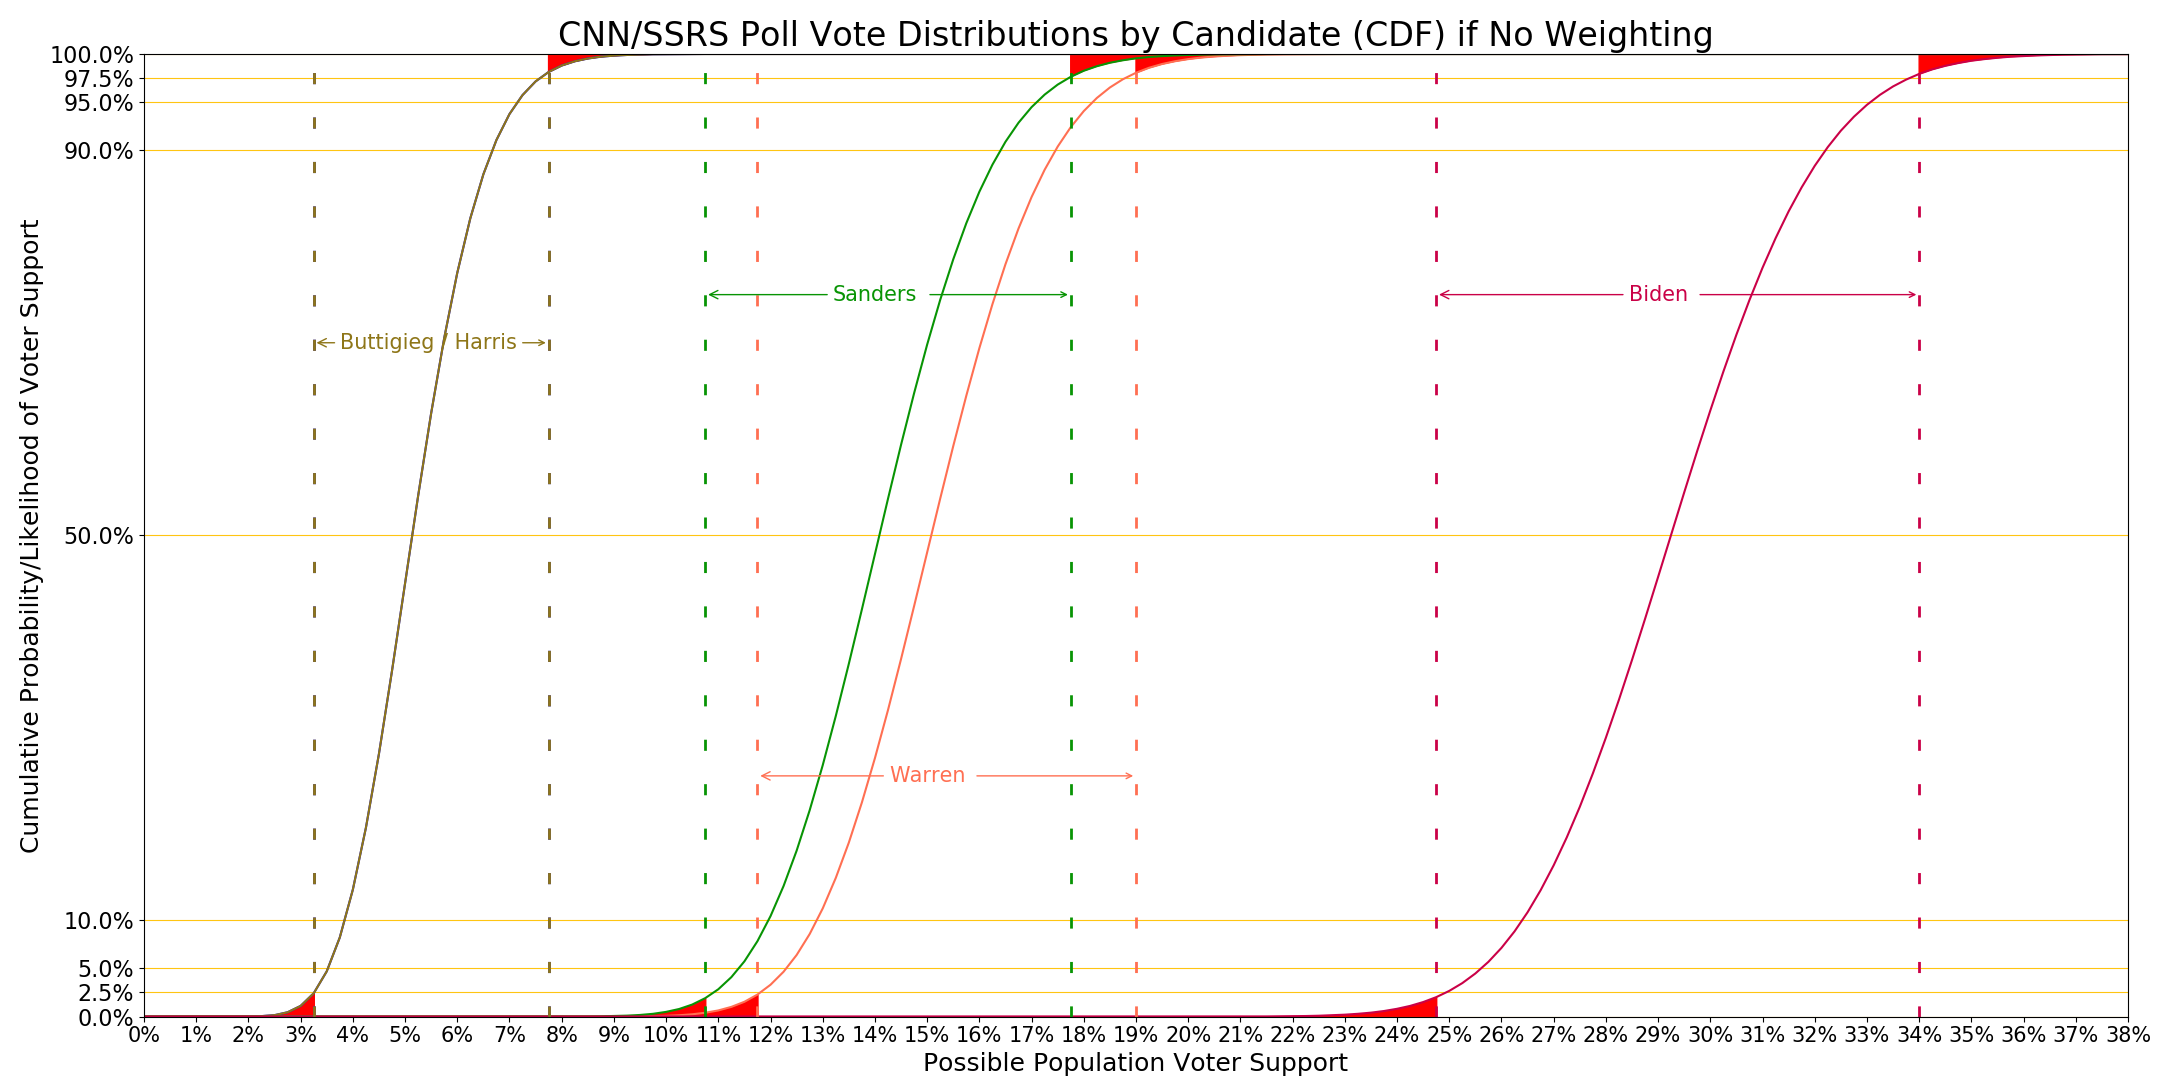 CNN SSRS distributions graph without DE